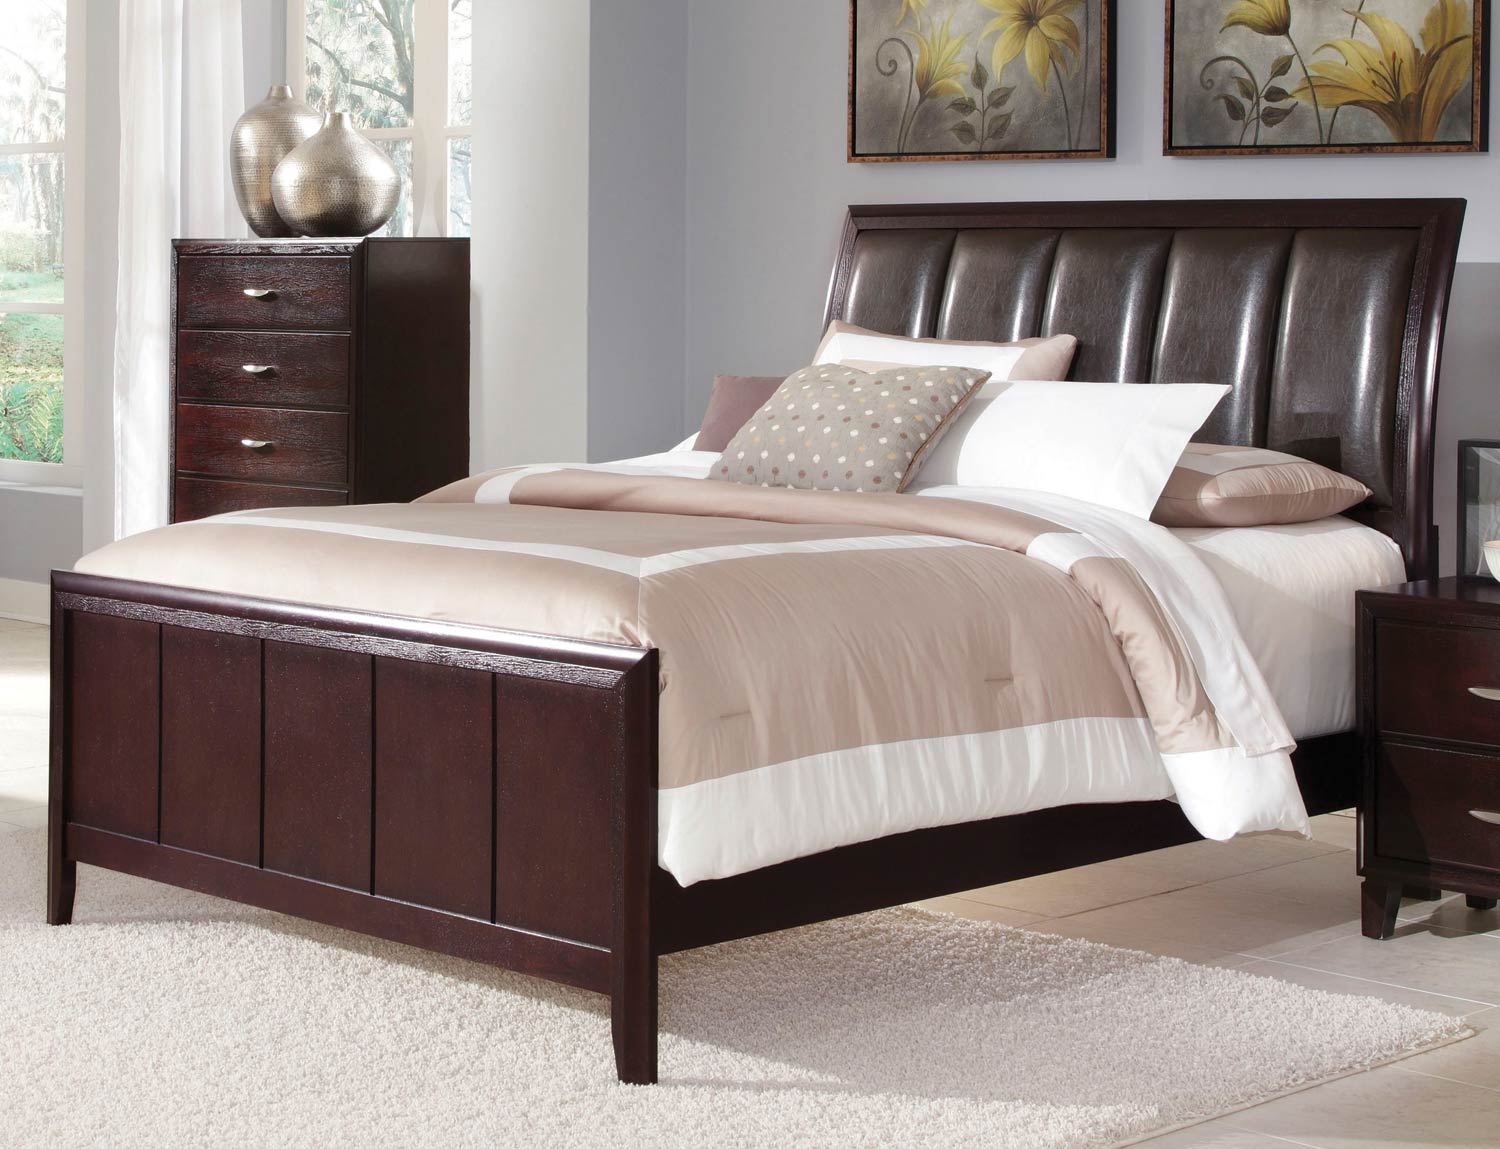 Coaster Coventry Bed - Brown